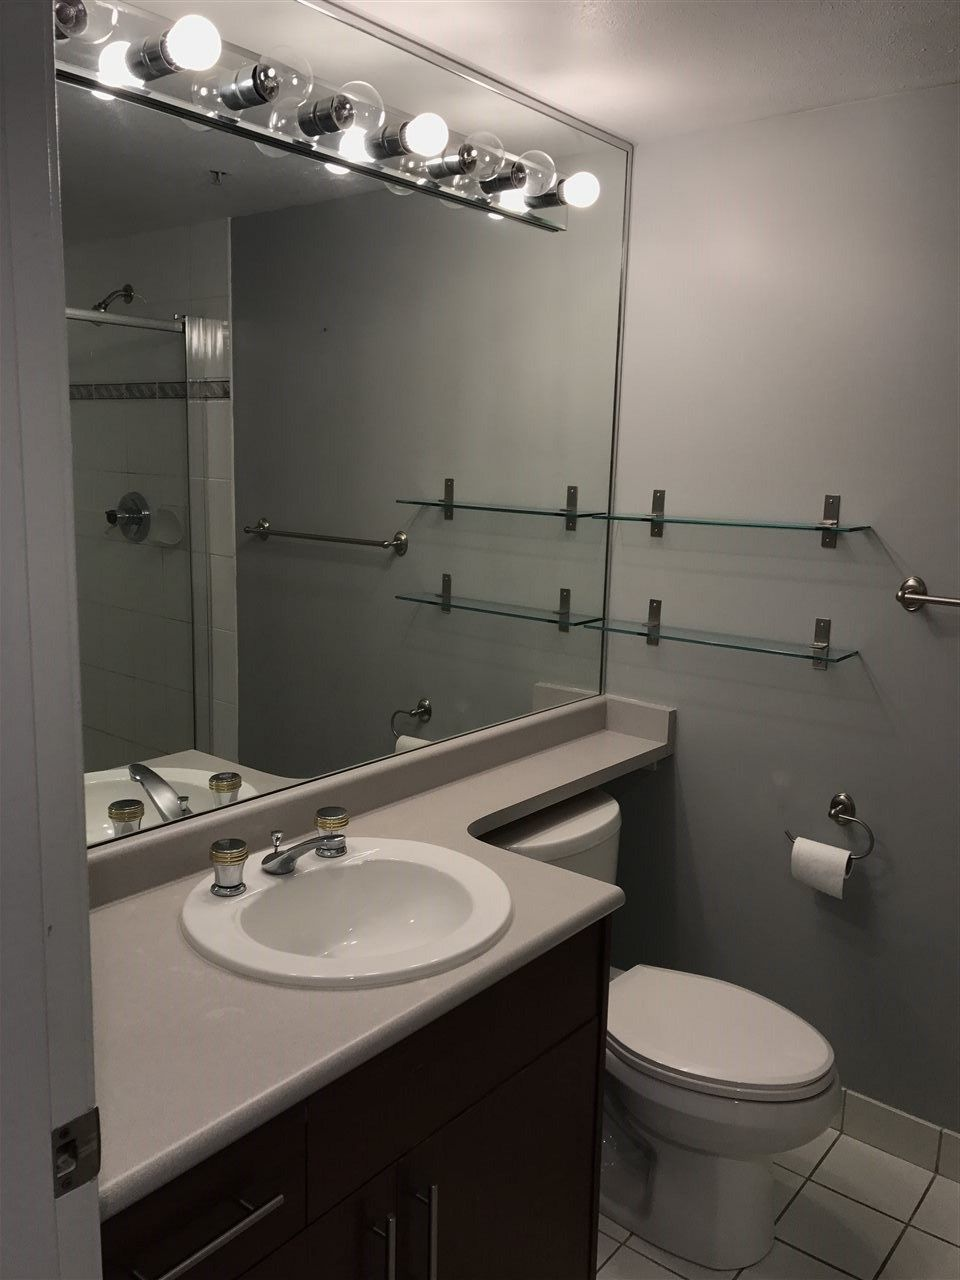 """Photo 2: Photos: 1001 867 HAMILTON Street in Vancouver: Downtown VW Condo for sale in """"JARDINE'S LOOKOUT"""" (Vancouver West)  : MLS®# R2248805"""